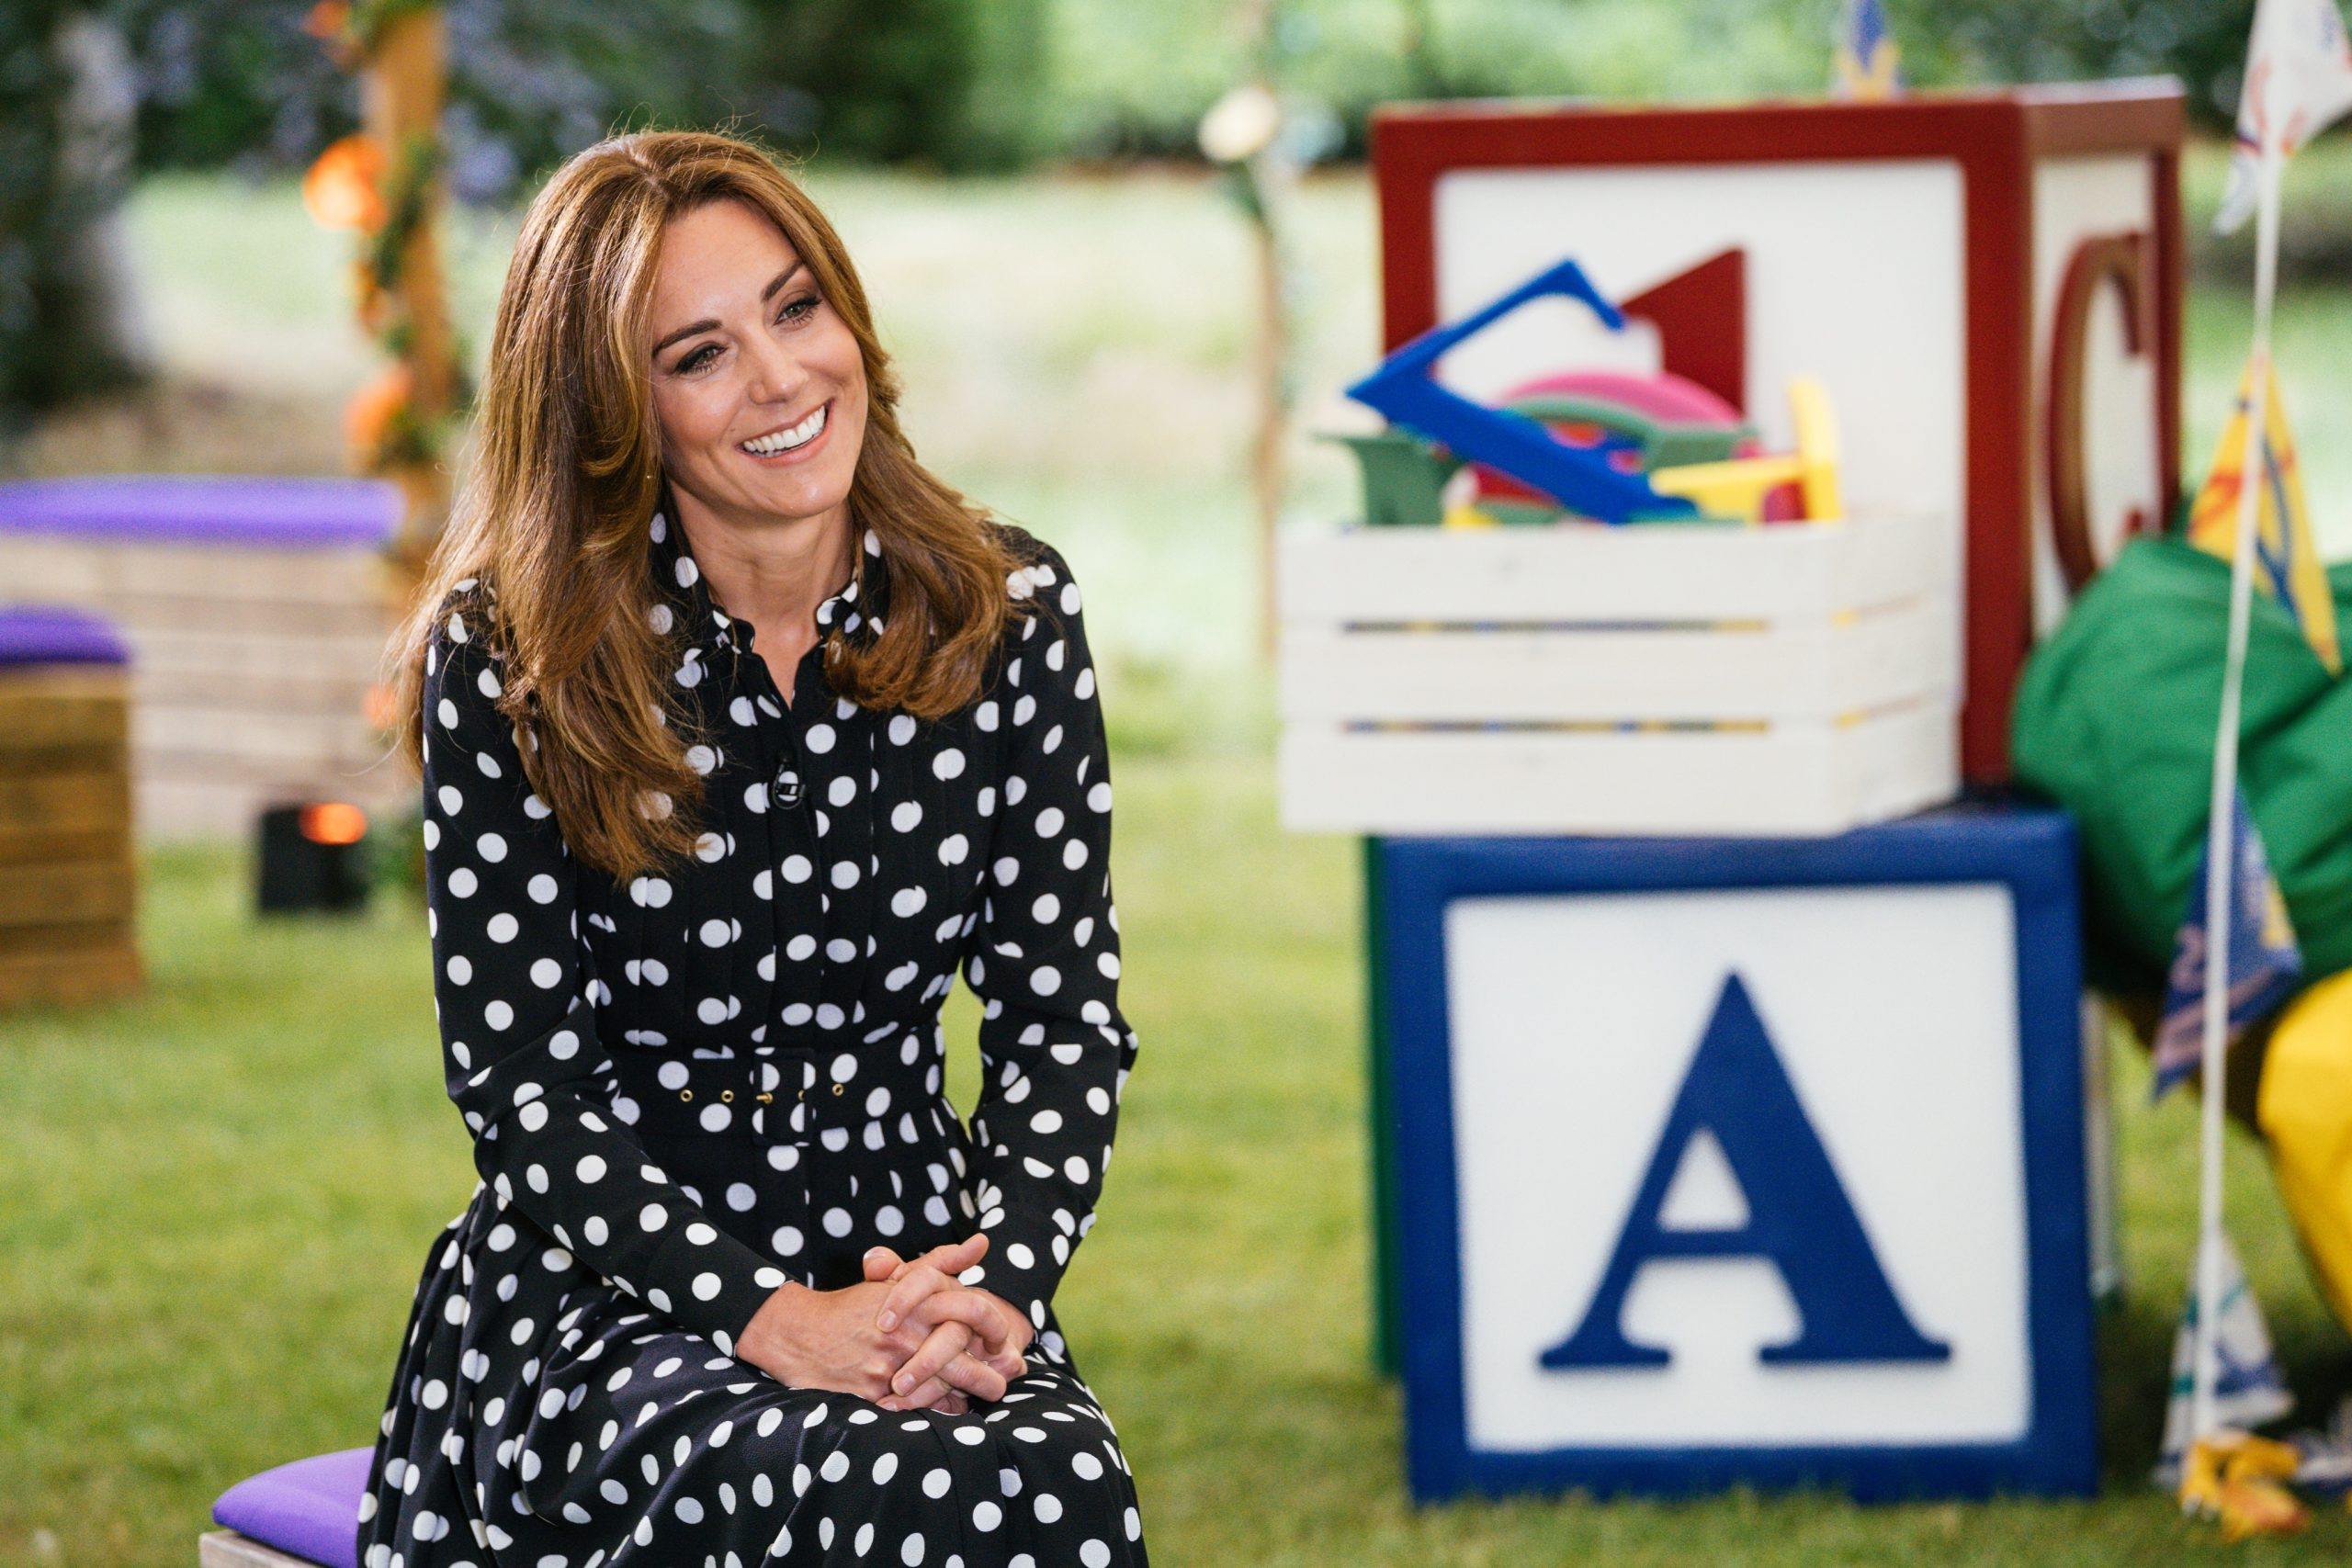 Duchess of Cambridge works with BBC on 'Tiny Happy People' to fill ...